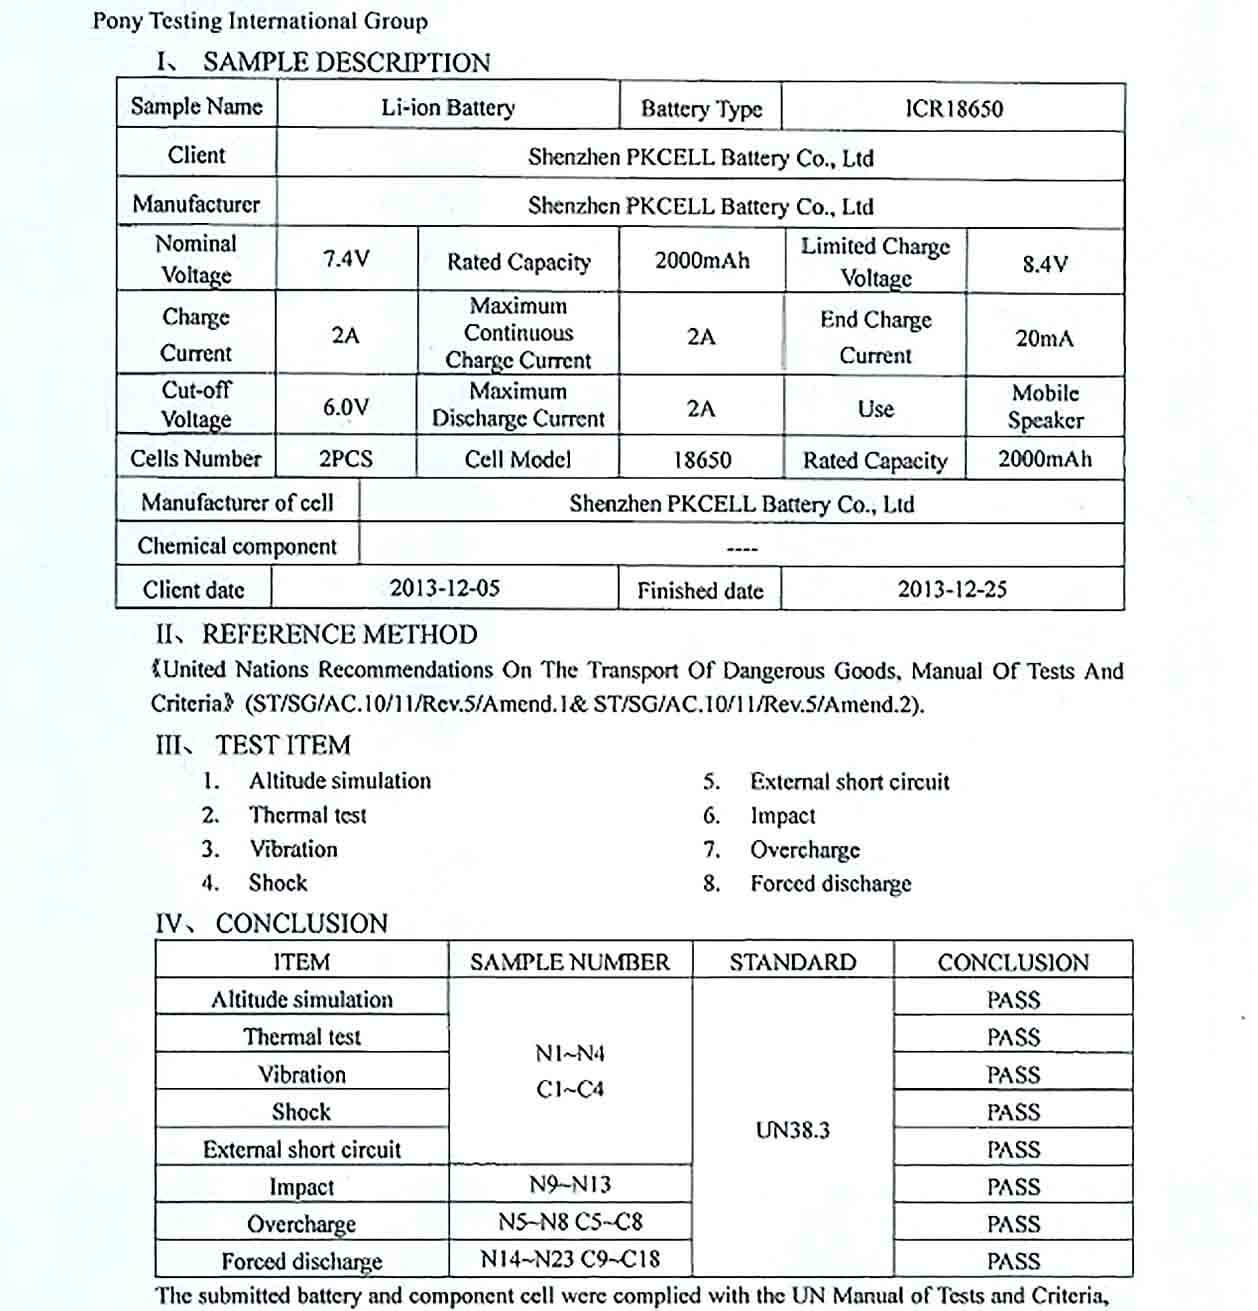 Sample Example of Test Report